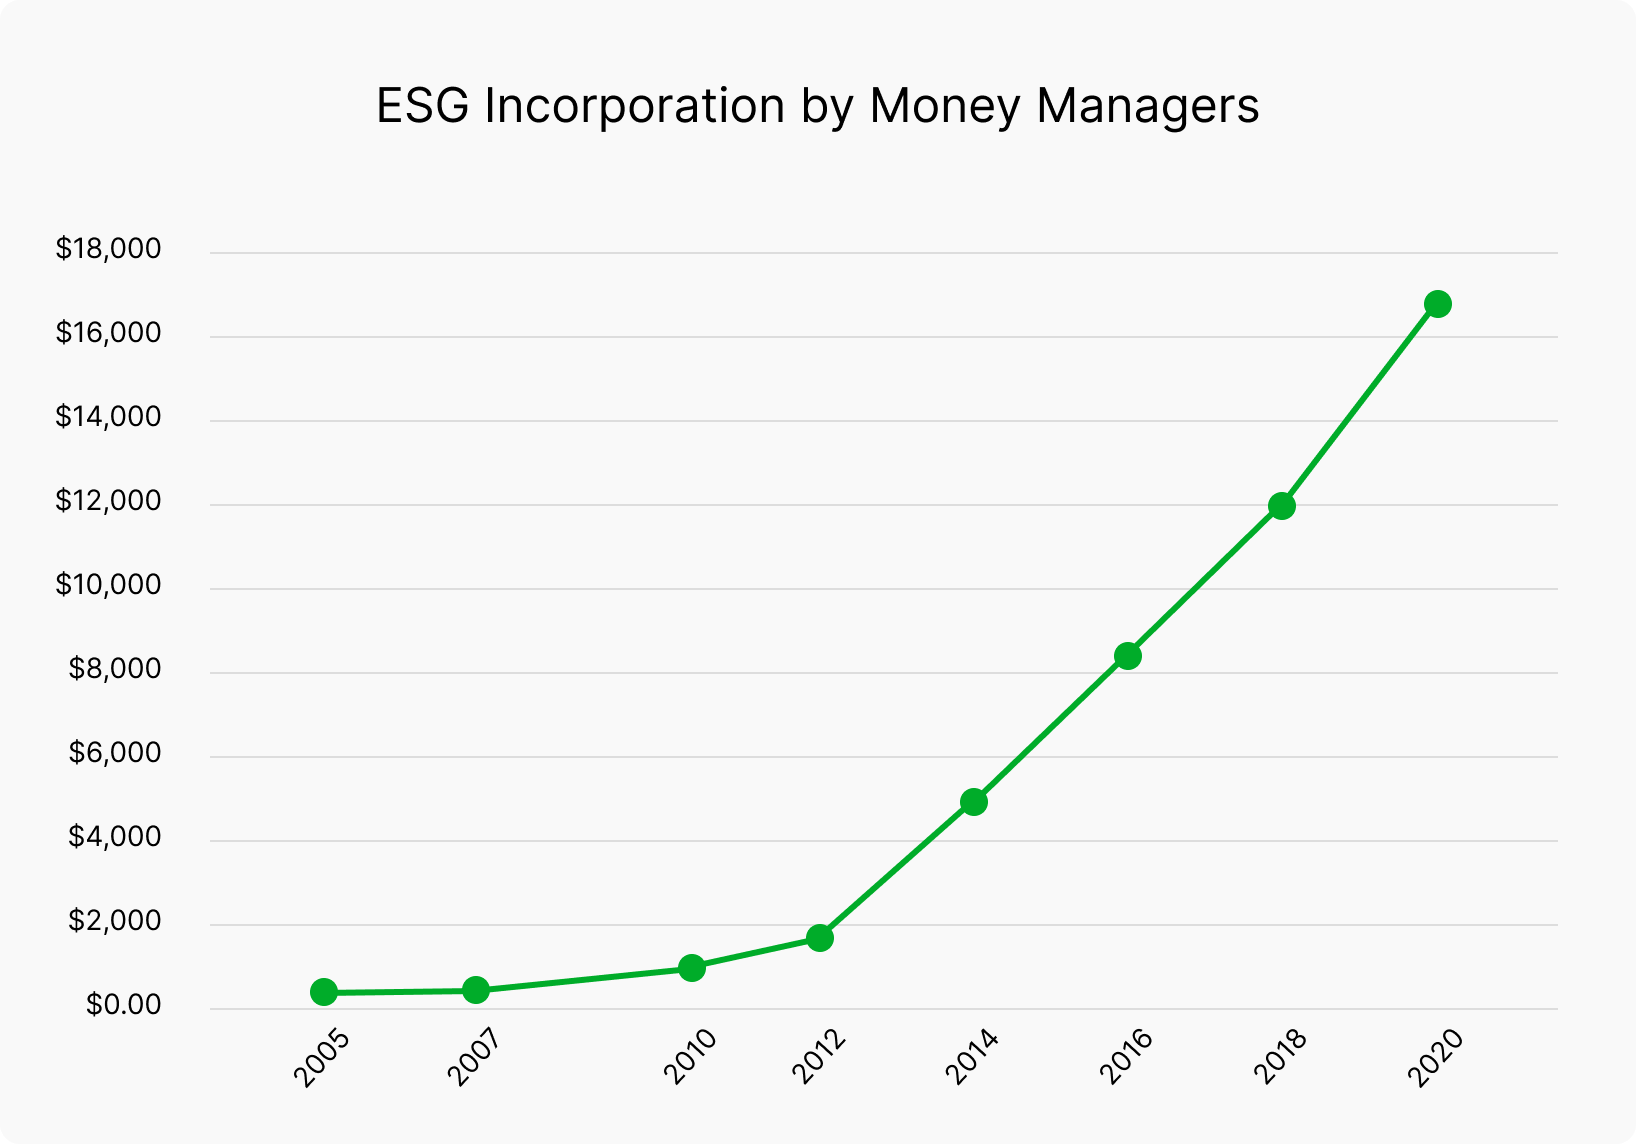 Chart showing ESG incorporation by money managers from 2005 to 2020